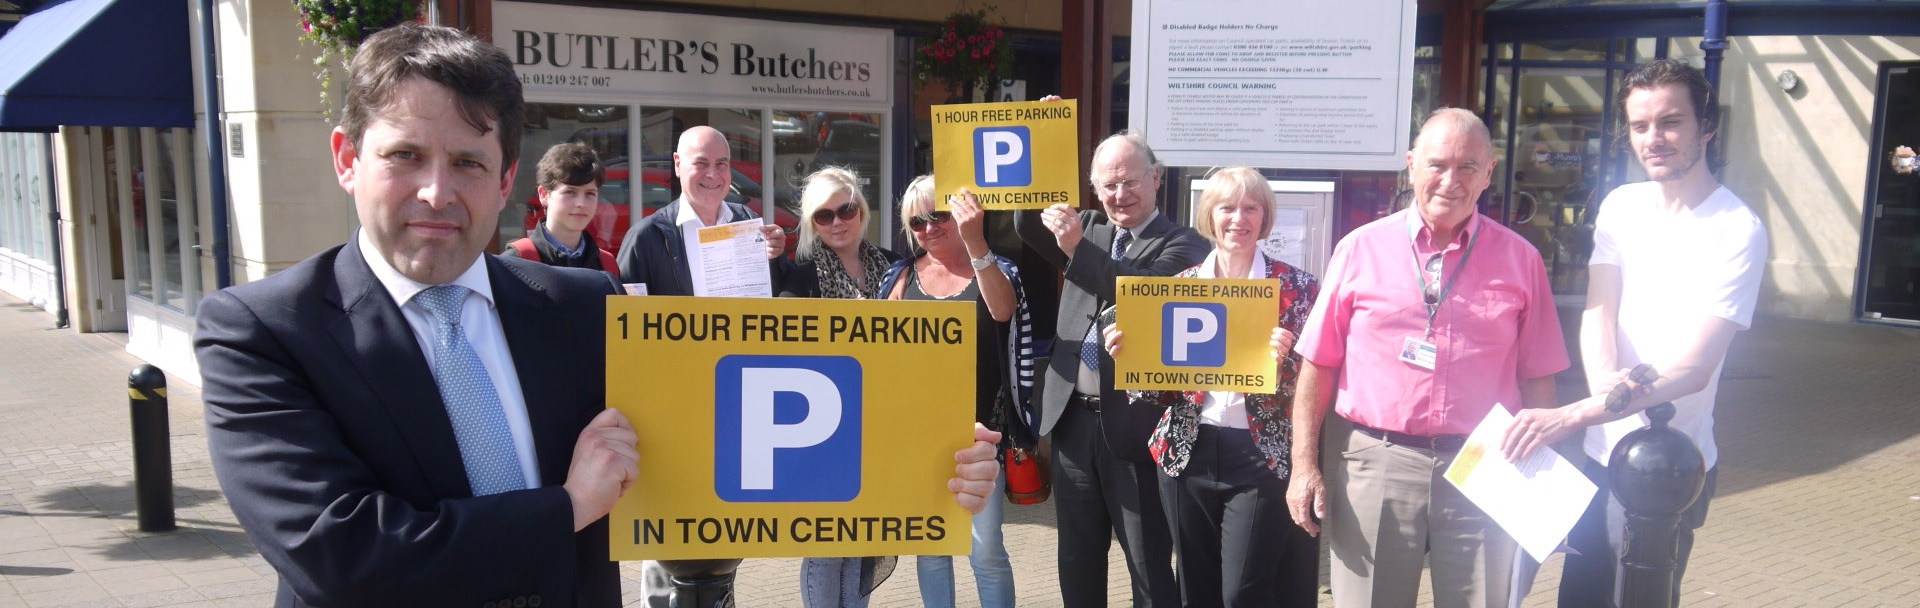 Free parking campaign